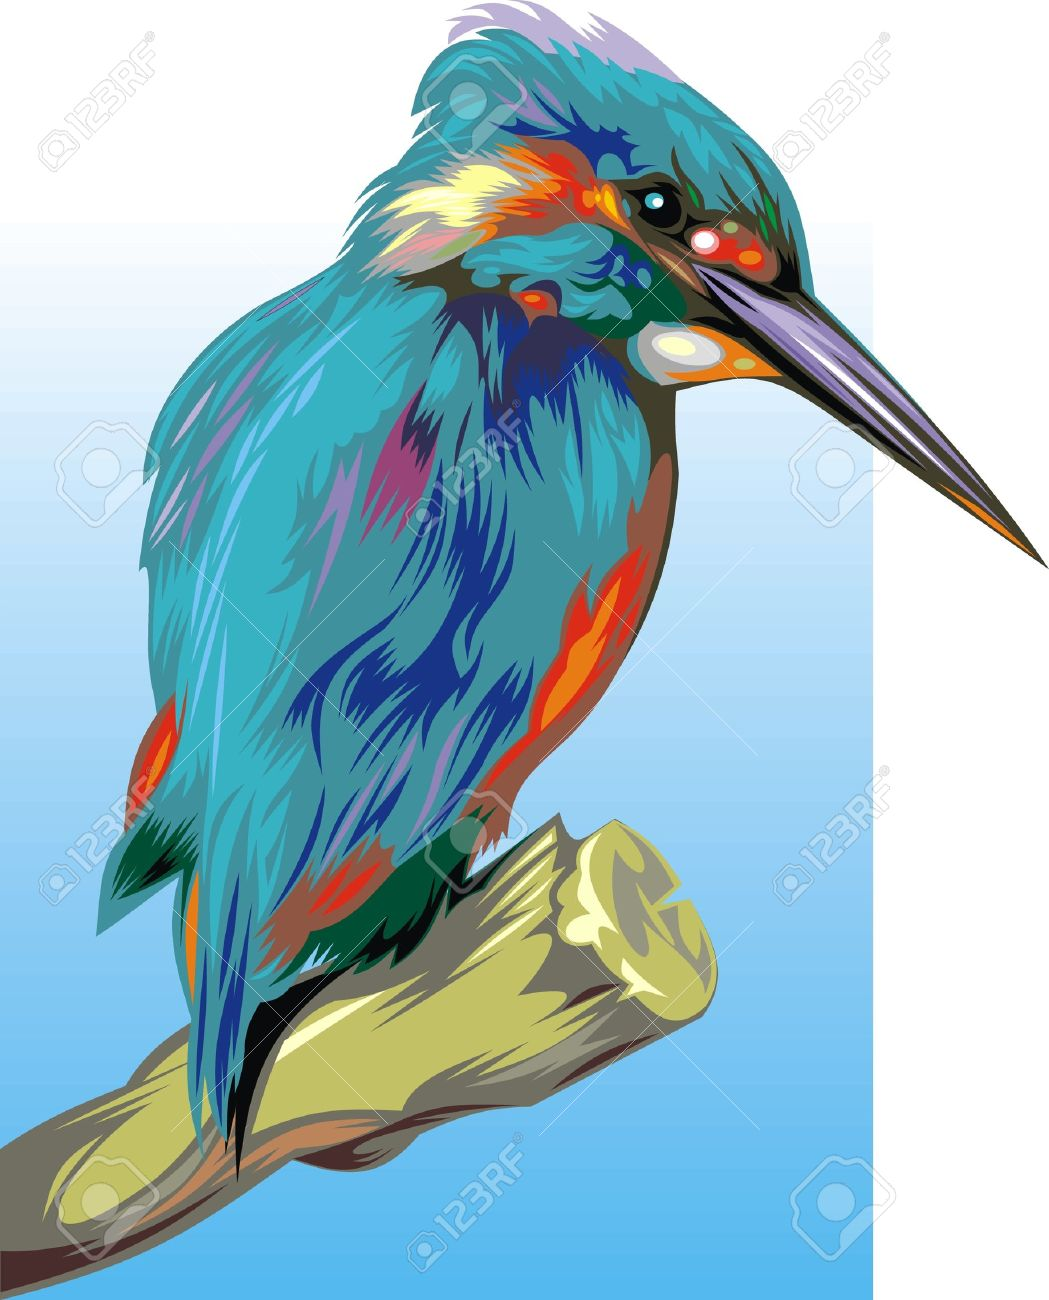 Kingfisher clipart #4, Download drawings